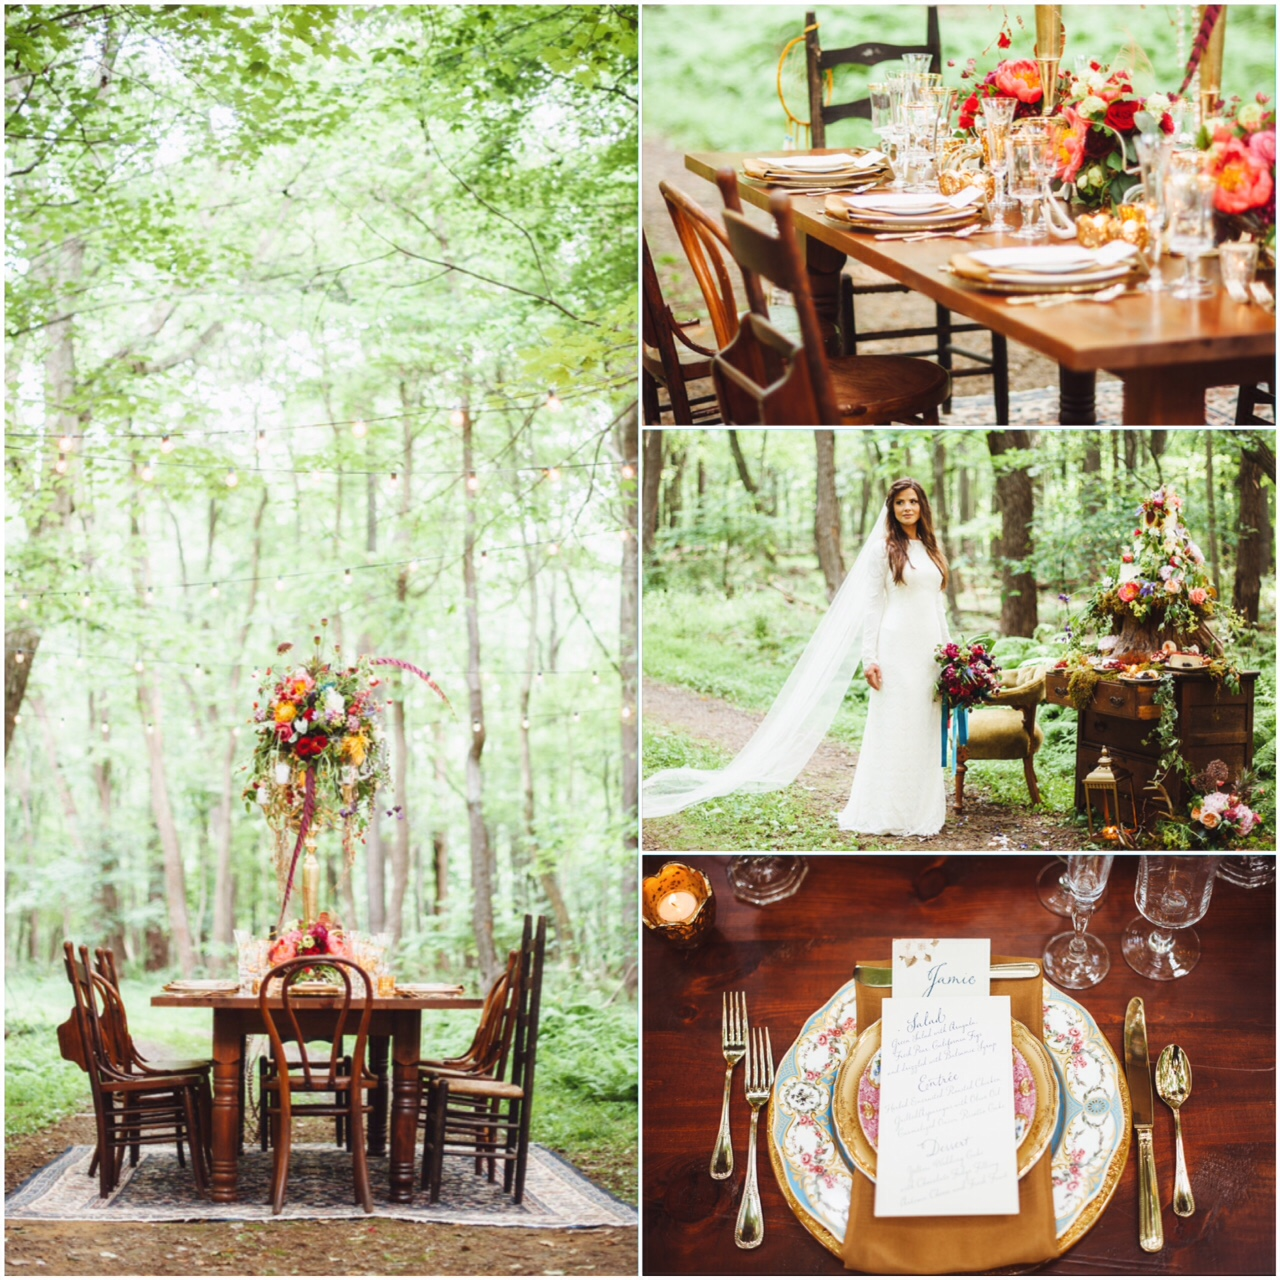 Boho Wedding Ideas for Celebrations Inspired by Nature